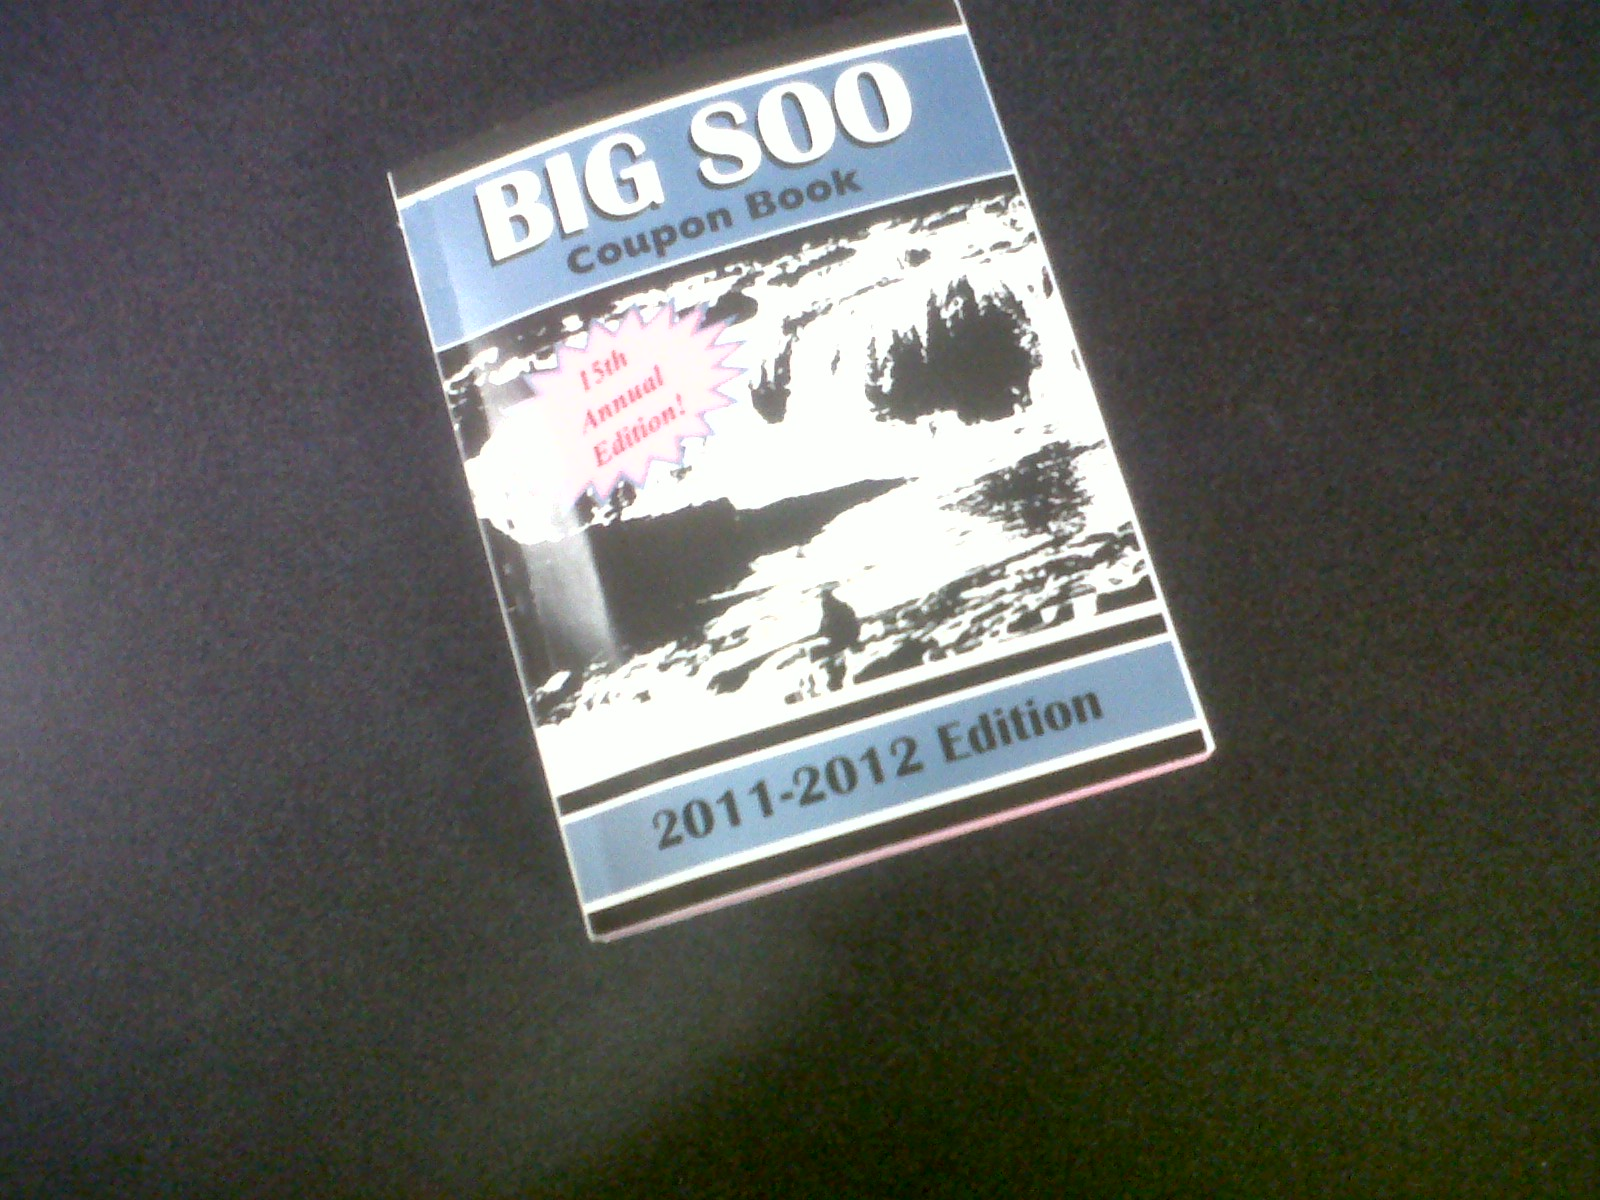 Big Soo Coupon Book/ Community Coupon Book